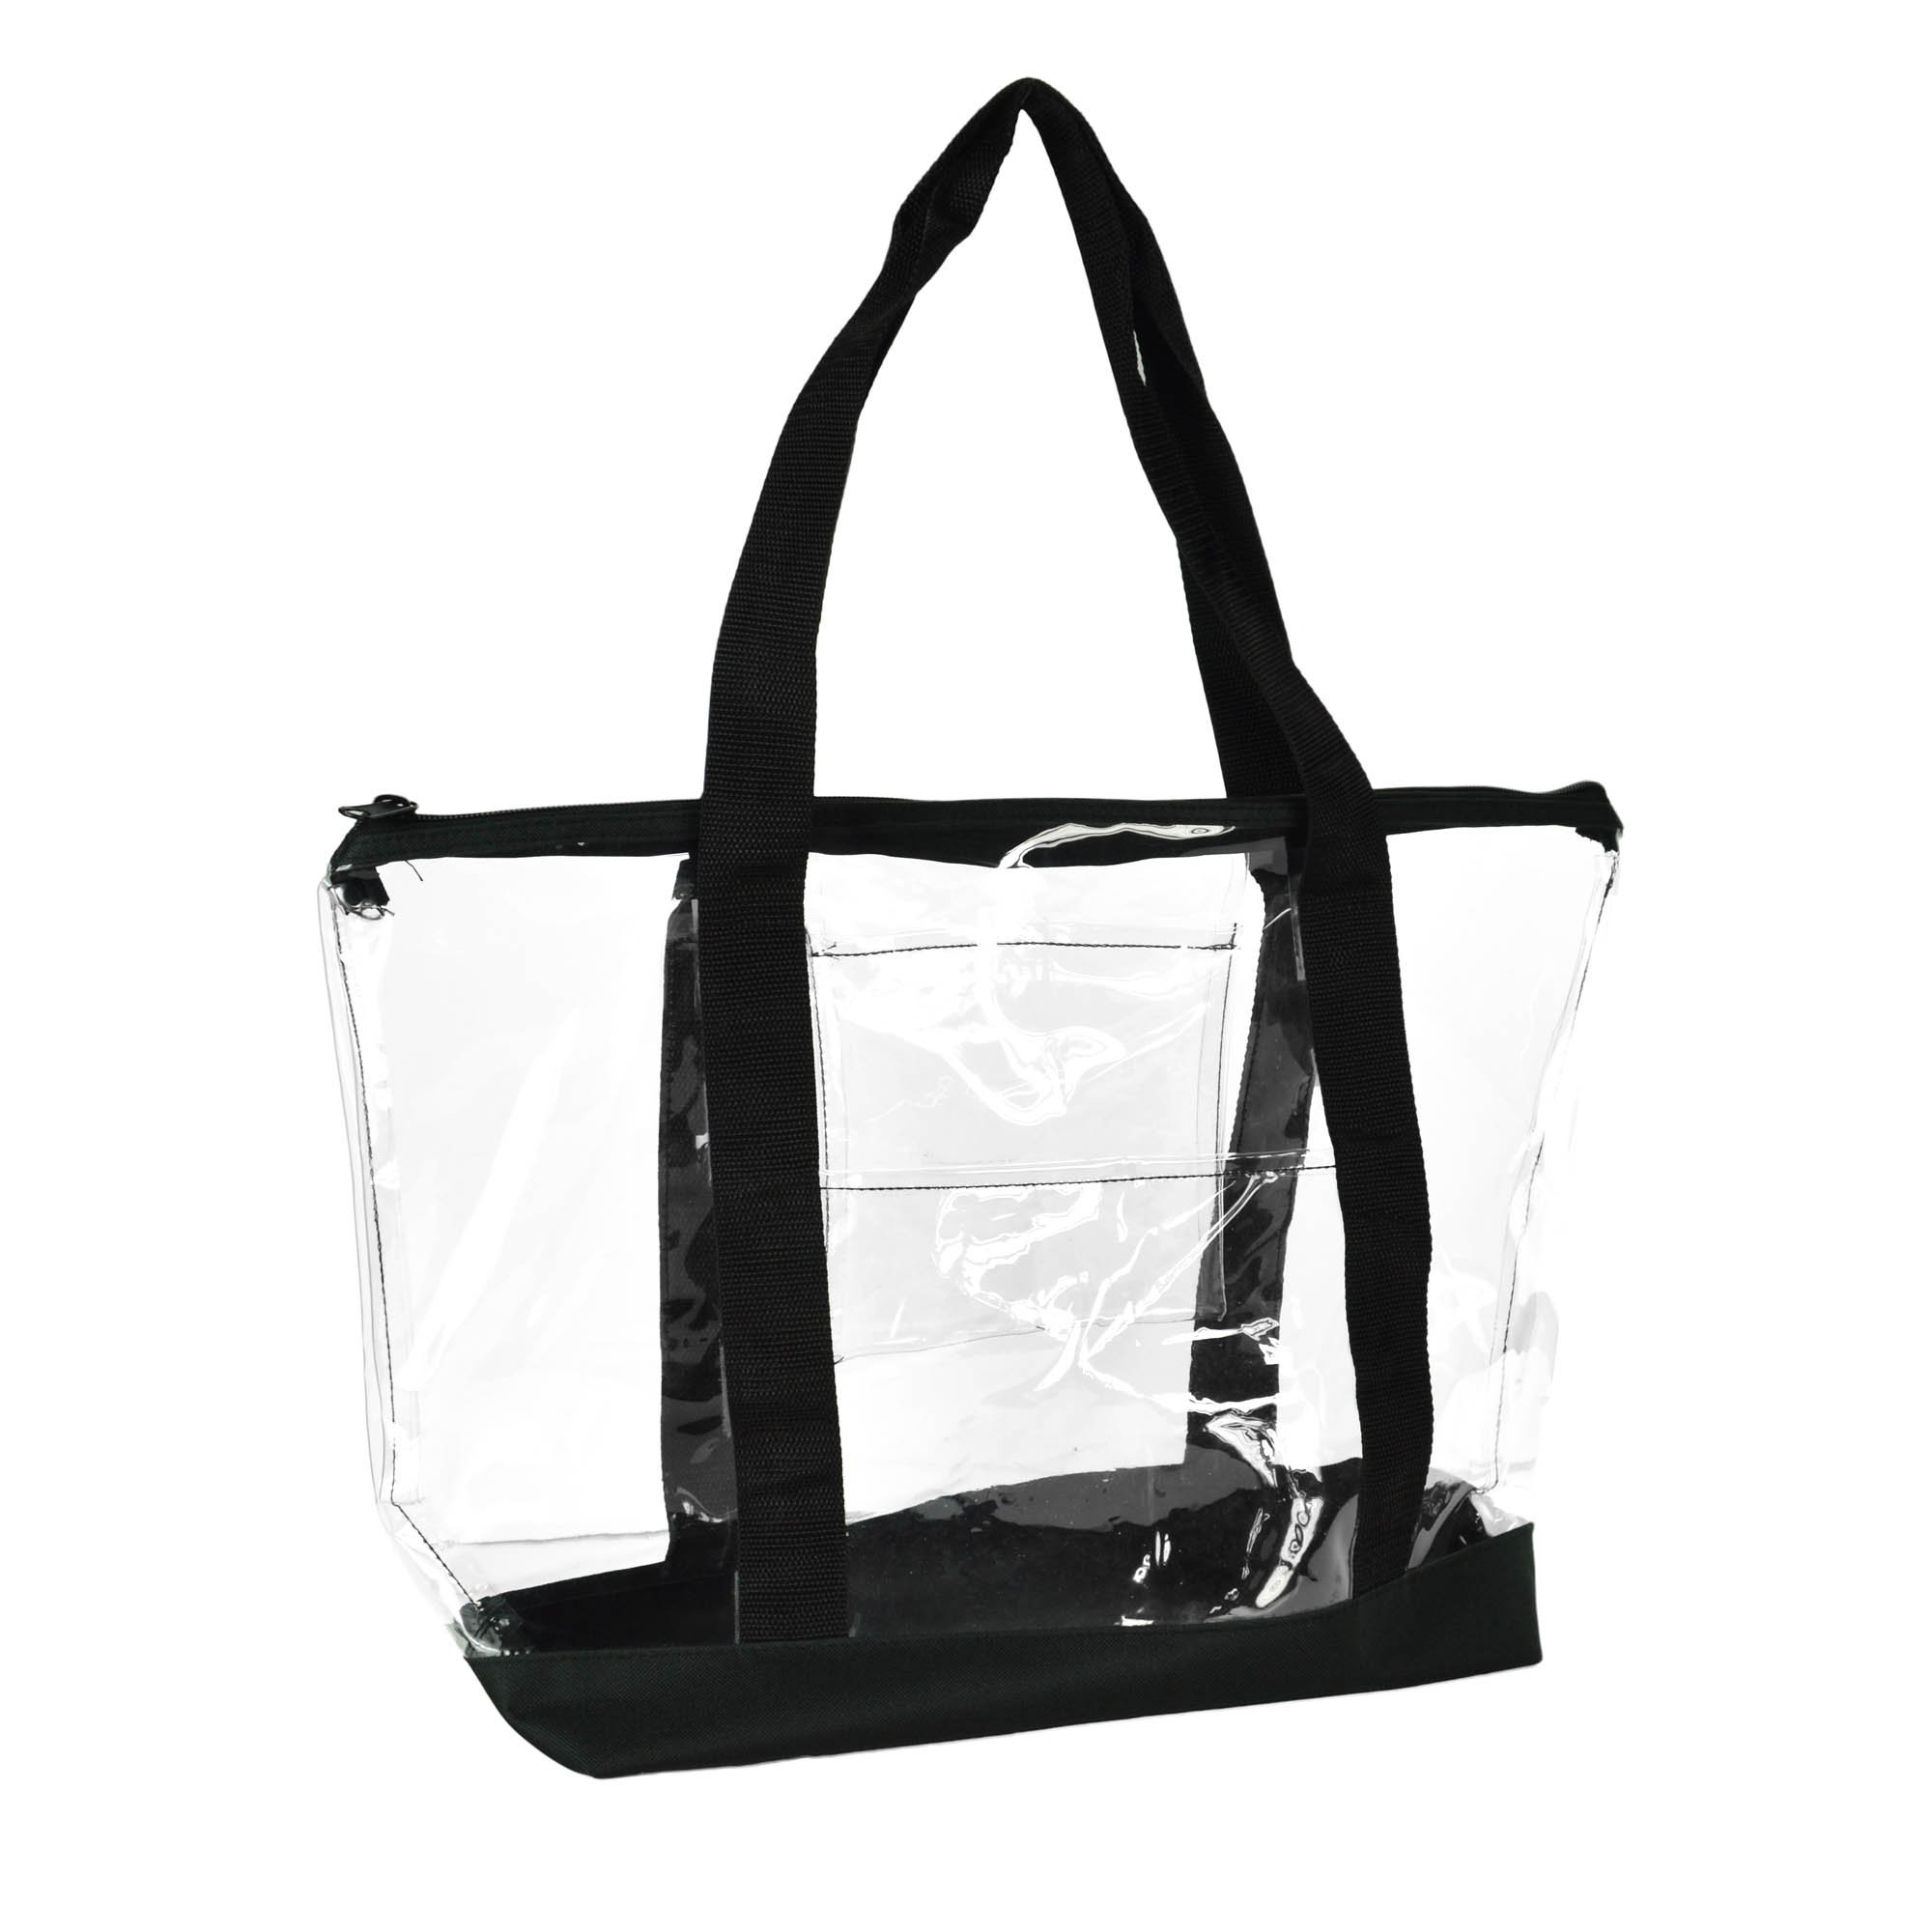 f6cf61aa50 DALIX Clear Shopping Bag Security Work Tote Shoulder Bag Womens Handbag  product image